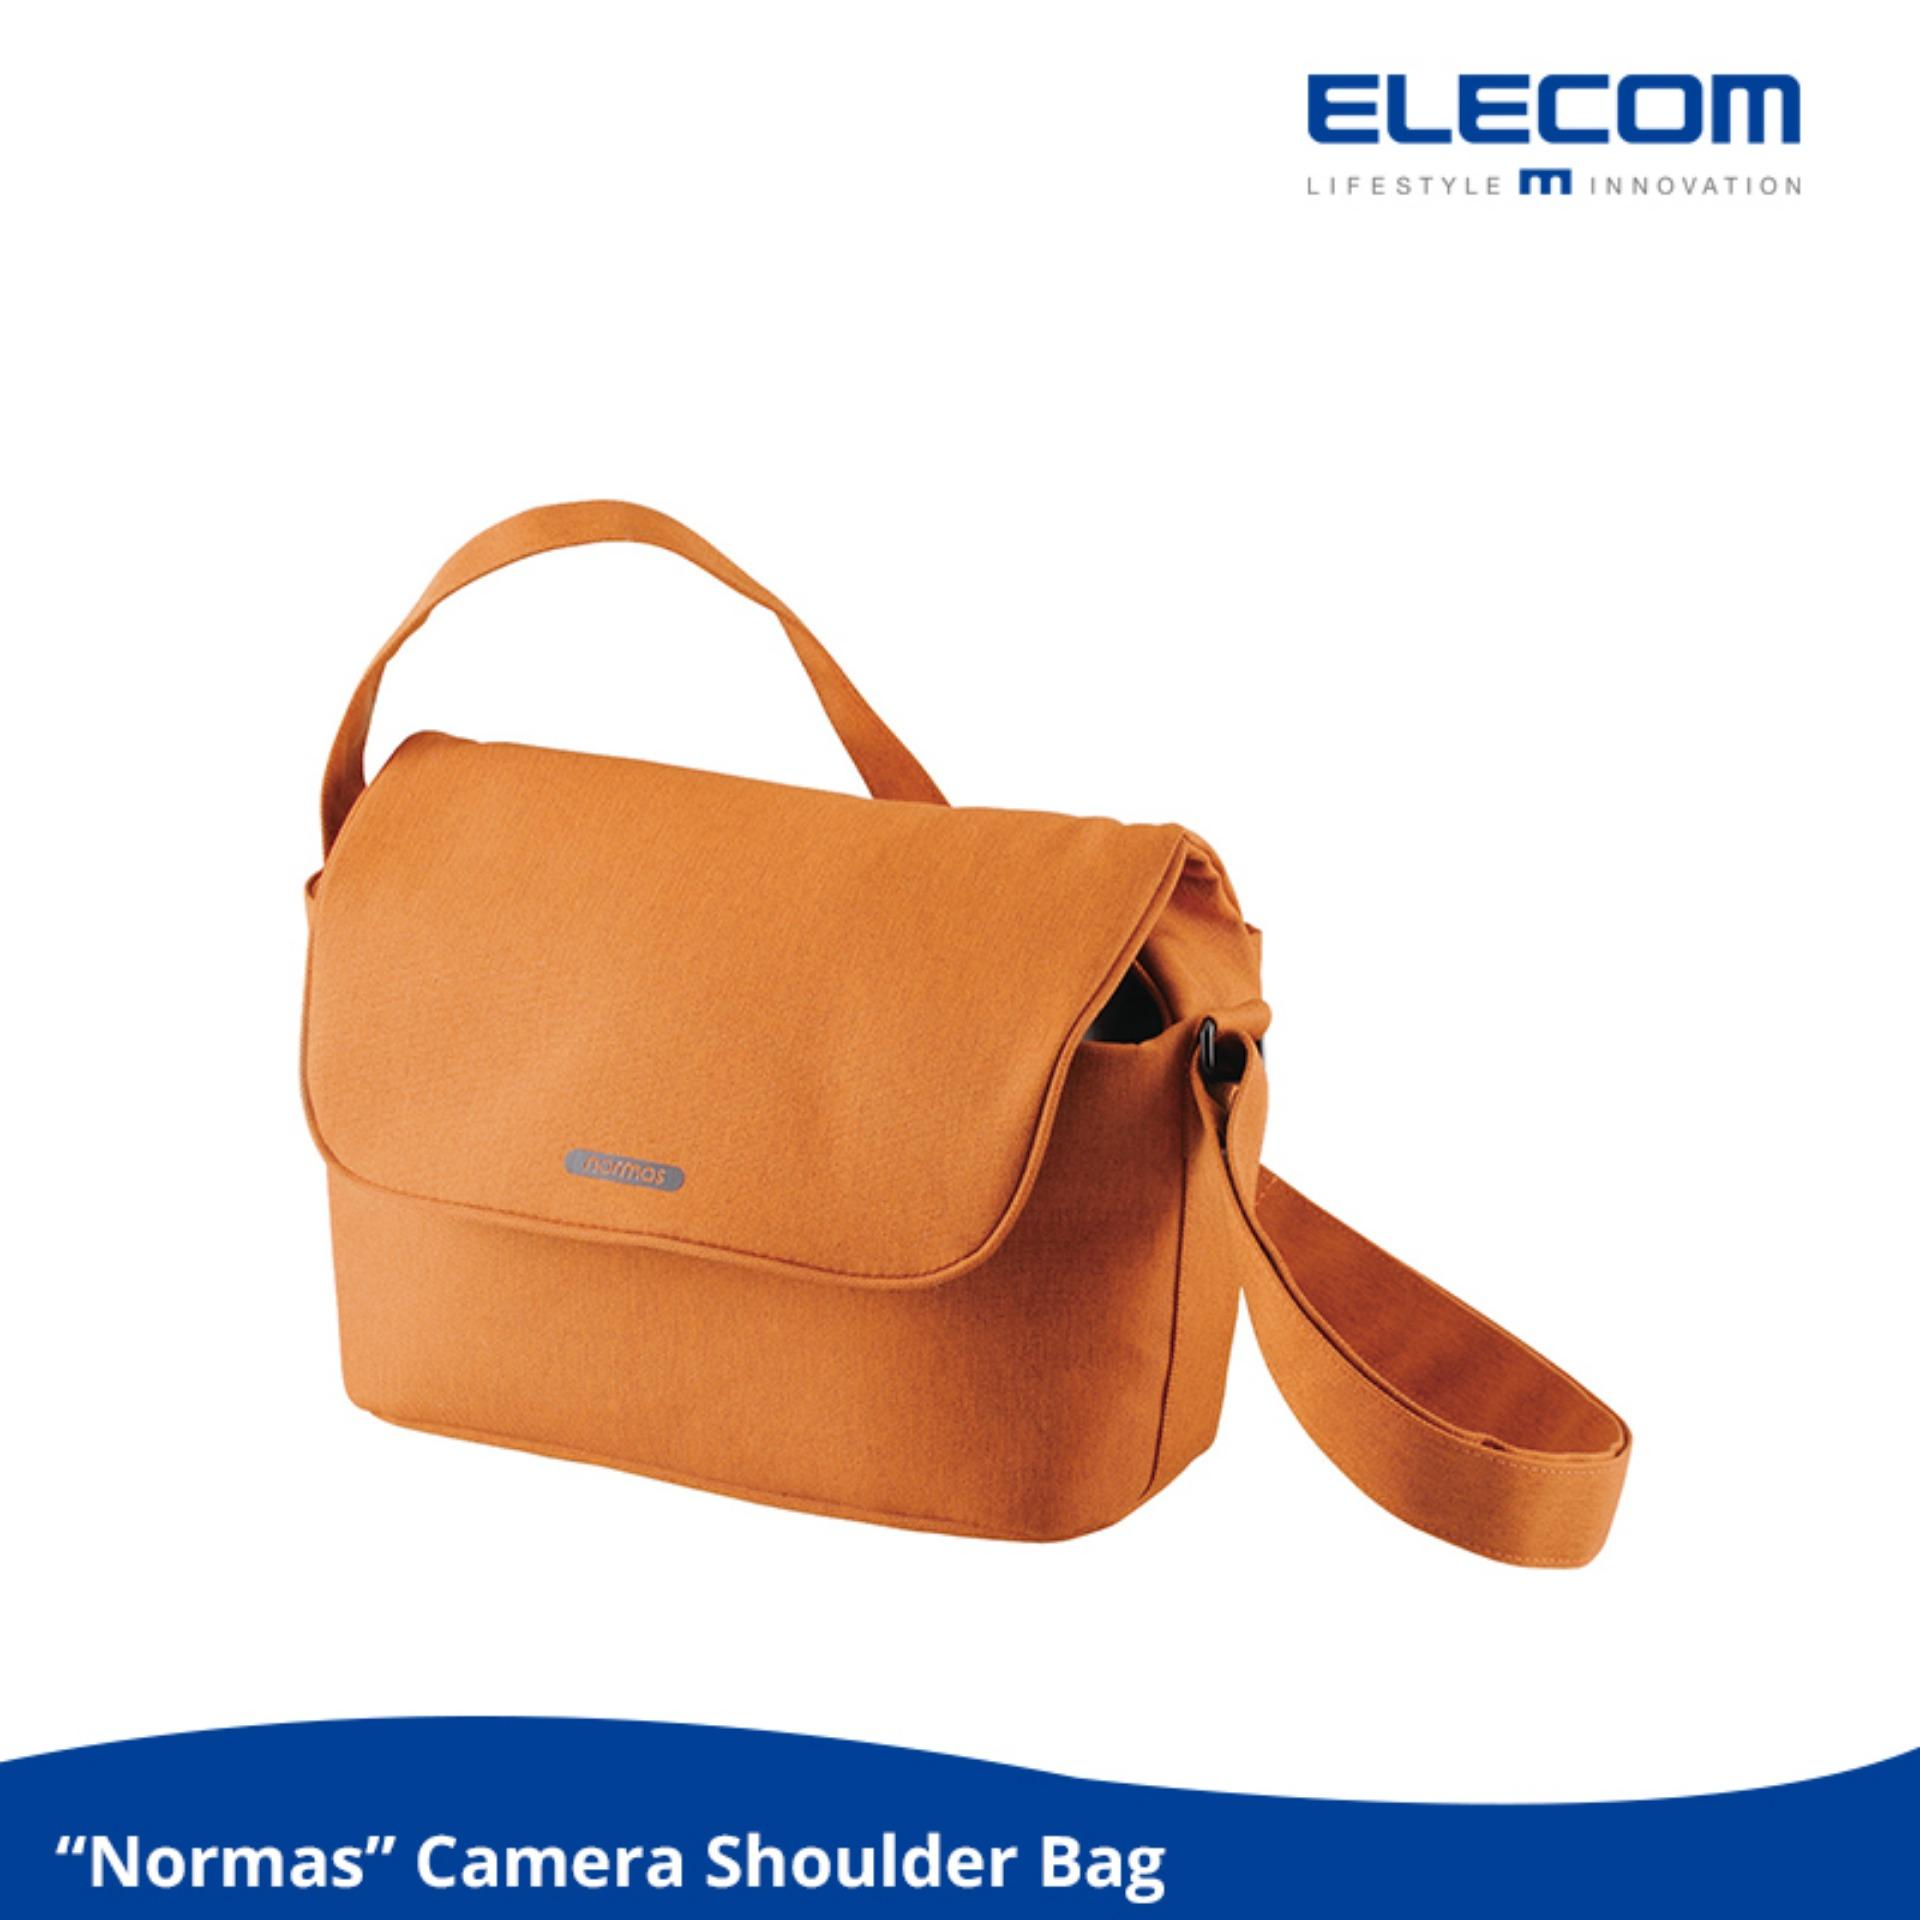 Buy Camera Cases Covers Bags Lazada Leather Denim Strap Kamera Mirrorless Dlsr Slr Canon Fujifilm Sony Elecom Normas S031 Shoulder Bag For Single Lens Reflex